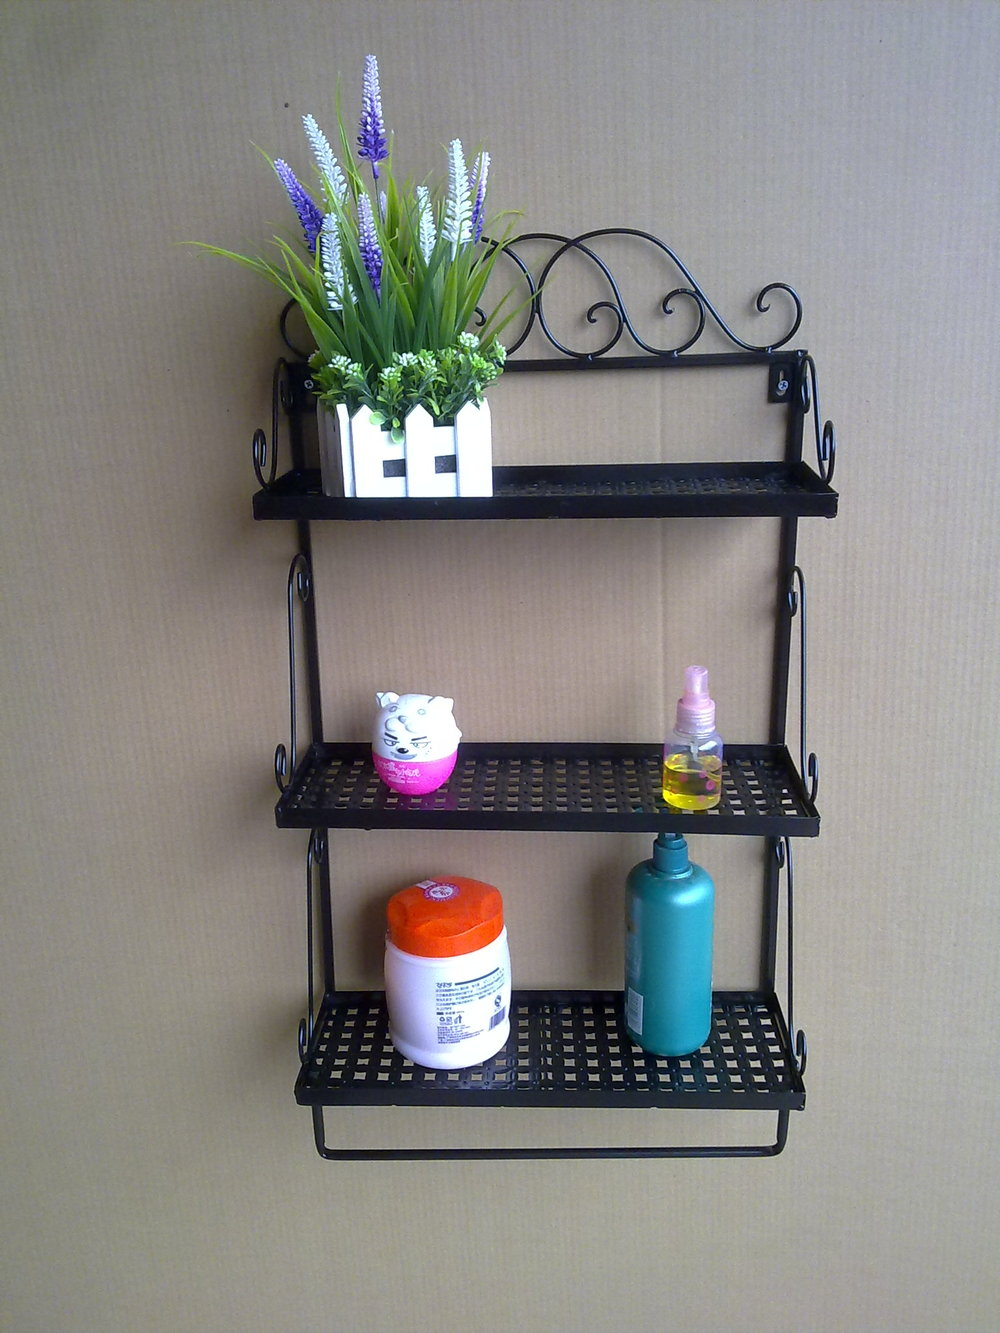 Bathroom Wall Shelves Wrought Iron Craft Towel Rack Countryside Style  Shower Caddy 3 Tier 3 Colors Bathroom Accessories In Bathroom Shelves From  Home ...